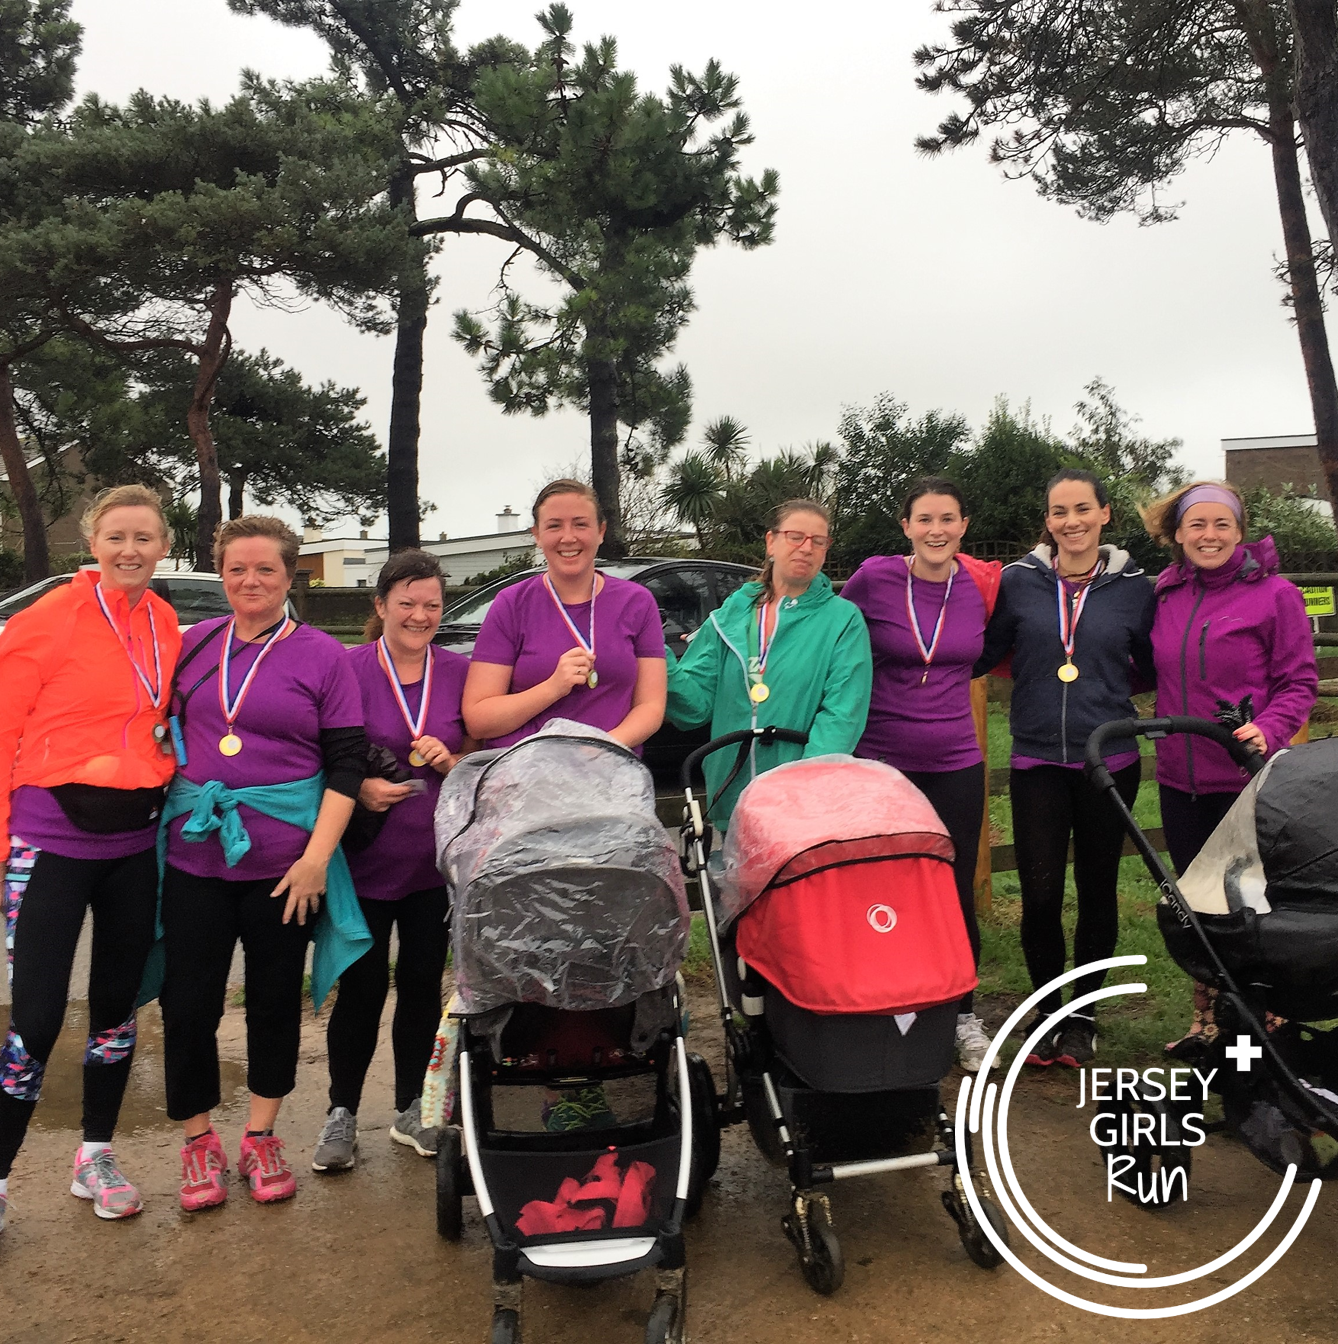 11 NOVEMBER 2017 - Teams Accomplish and Conquer head to parkrun - A wet and windy morning greeted our last C25K graduates of 2017 as Team Accomplish and our buggy mums Team Conquer headed to parkrun.  Despite the rain there were smiling faces all round at not only achieving their 5k, but also knowing that they can motivate themselves to get out and run even when the weather isn't in your favour.